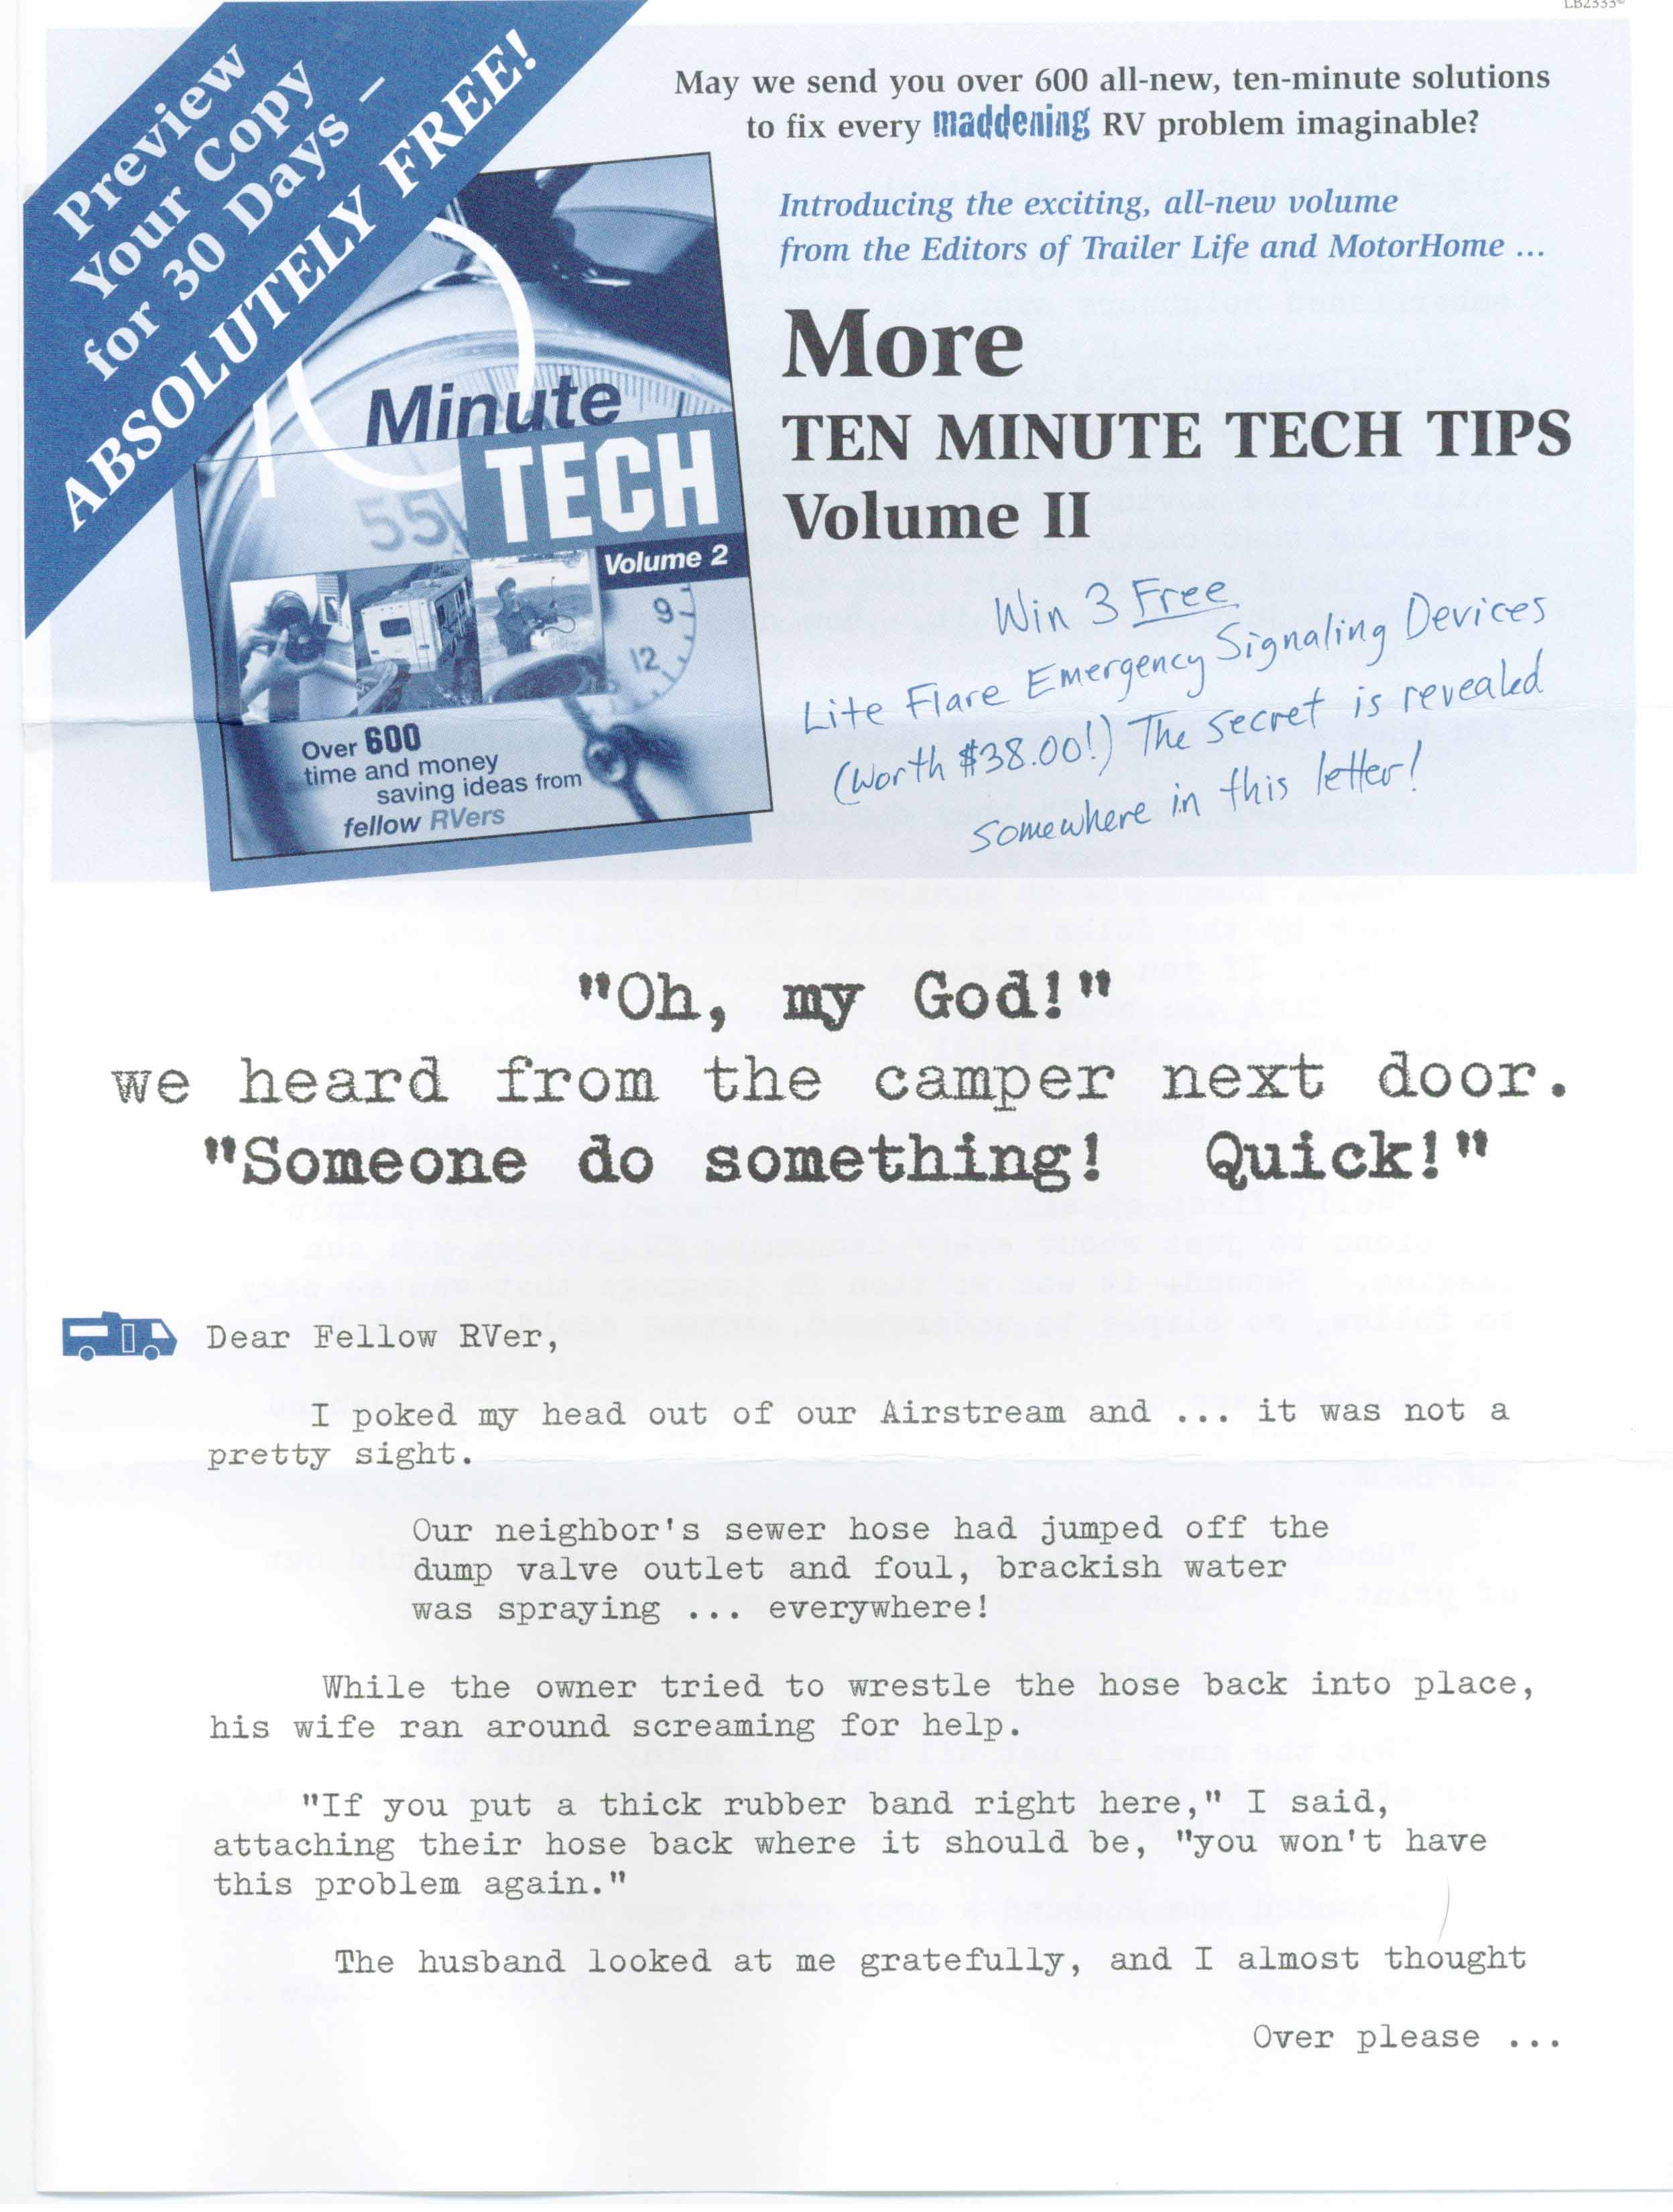 image of Ten Minute Tech direct mail sales letter page 1